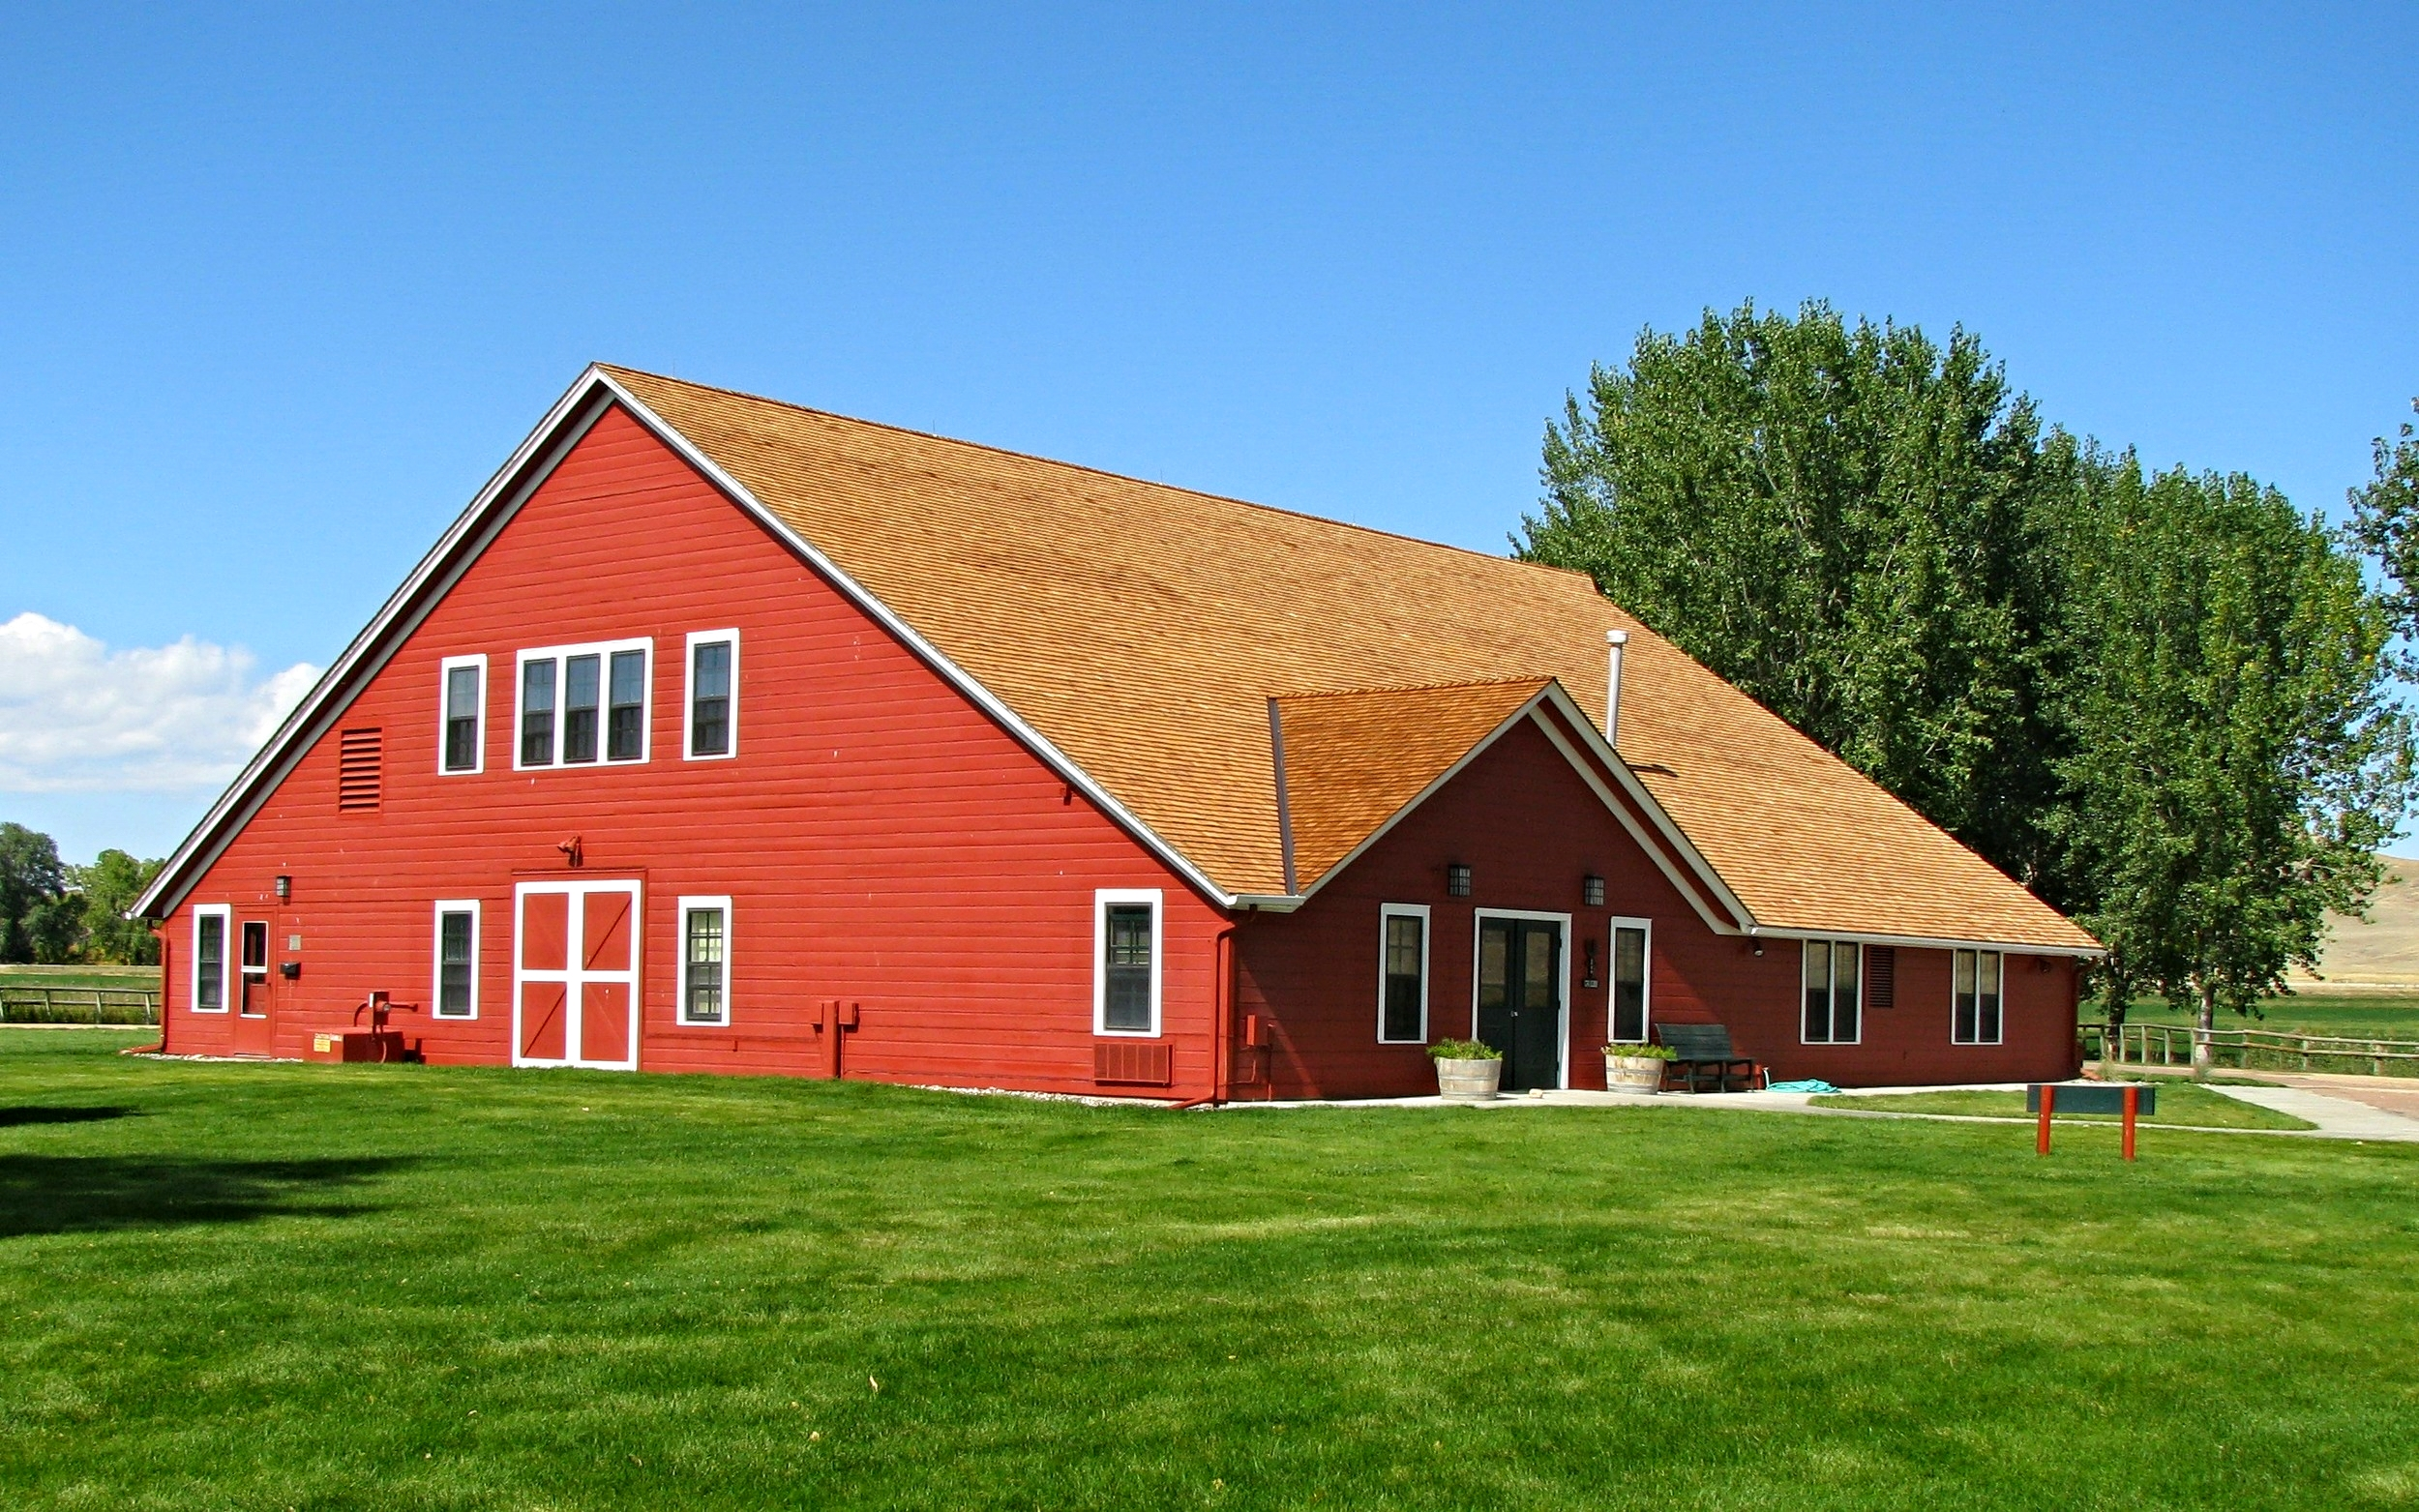 The Big Red Barn now houses an art gallery. Photo courtesy Ucross Foundation